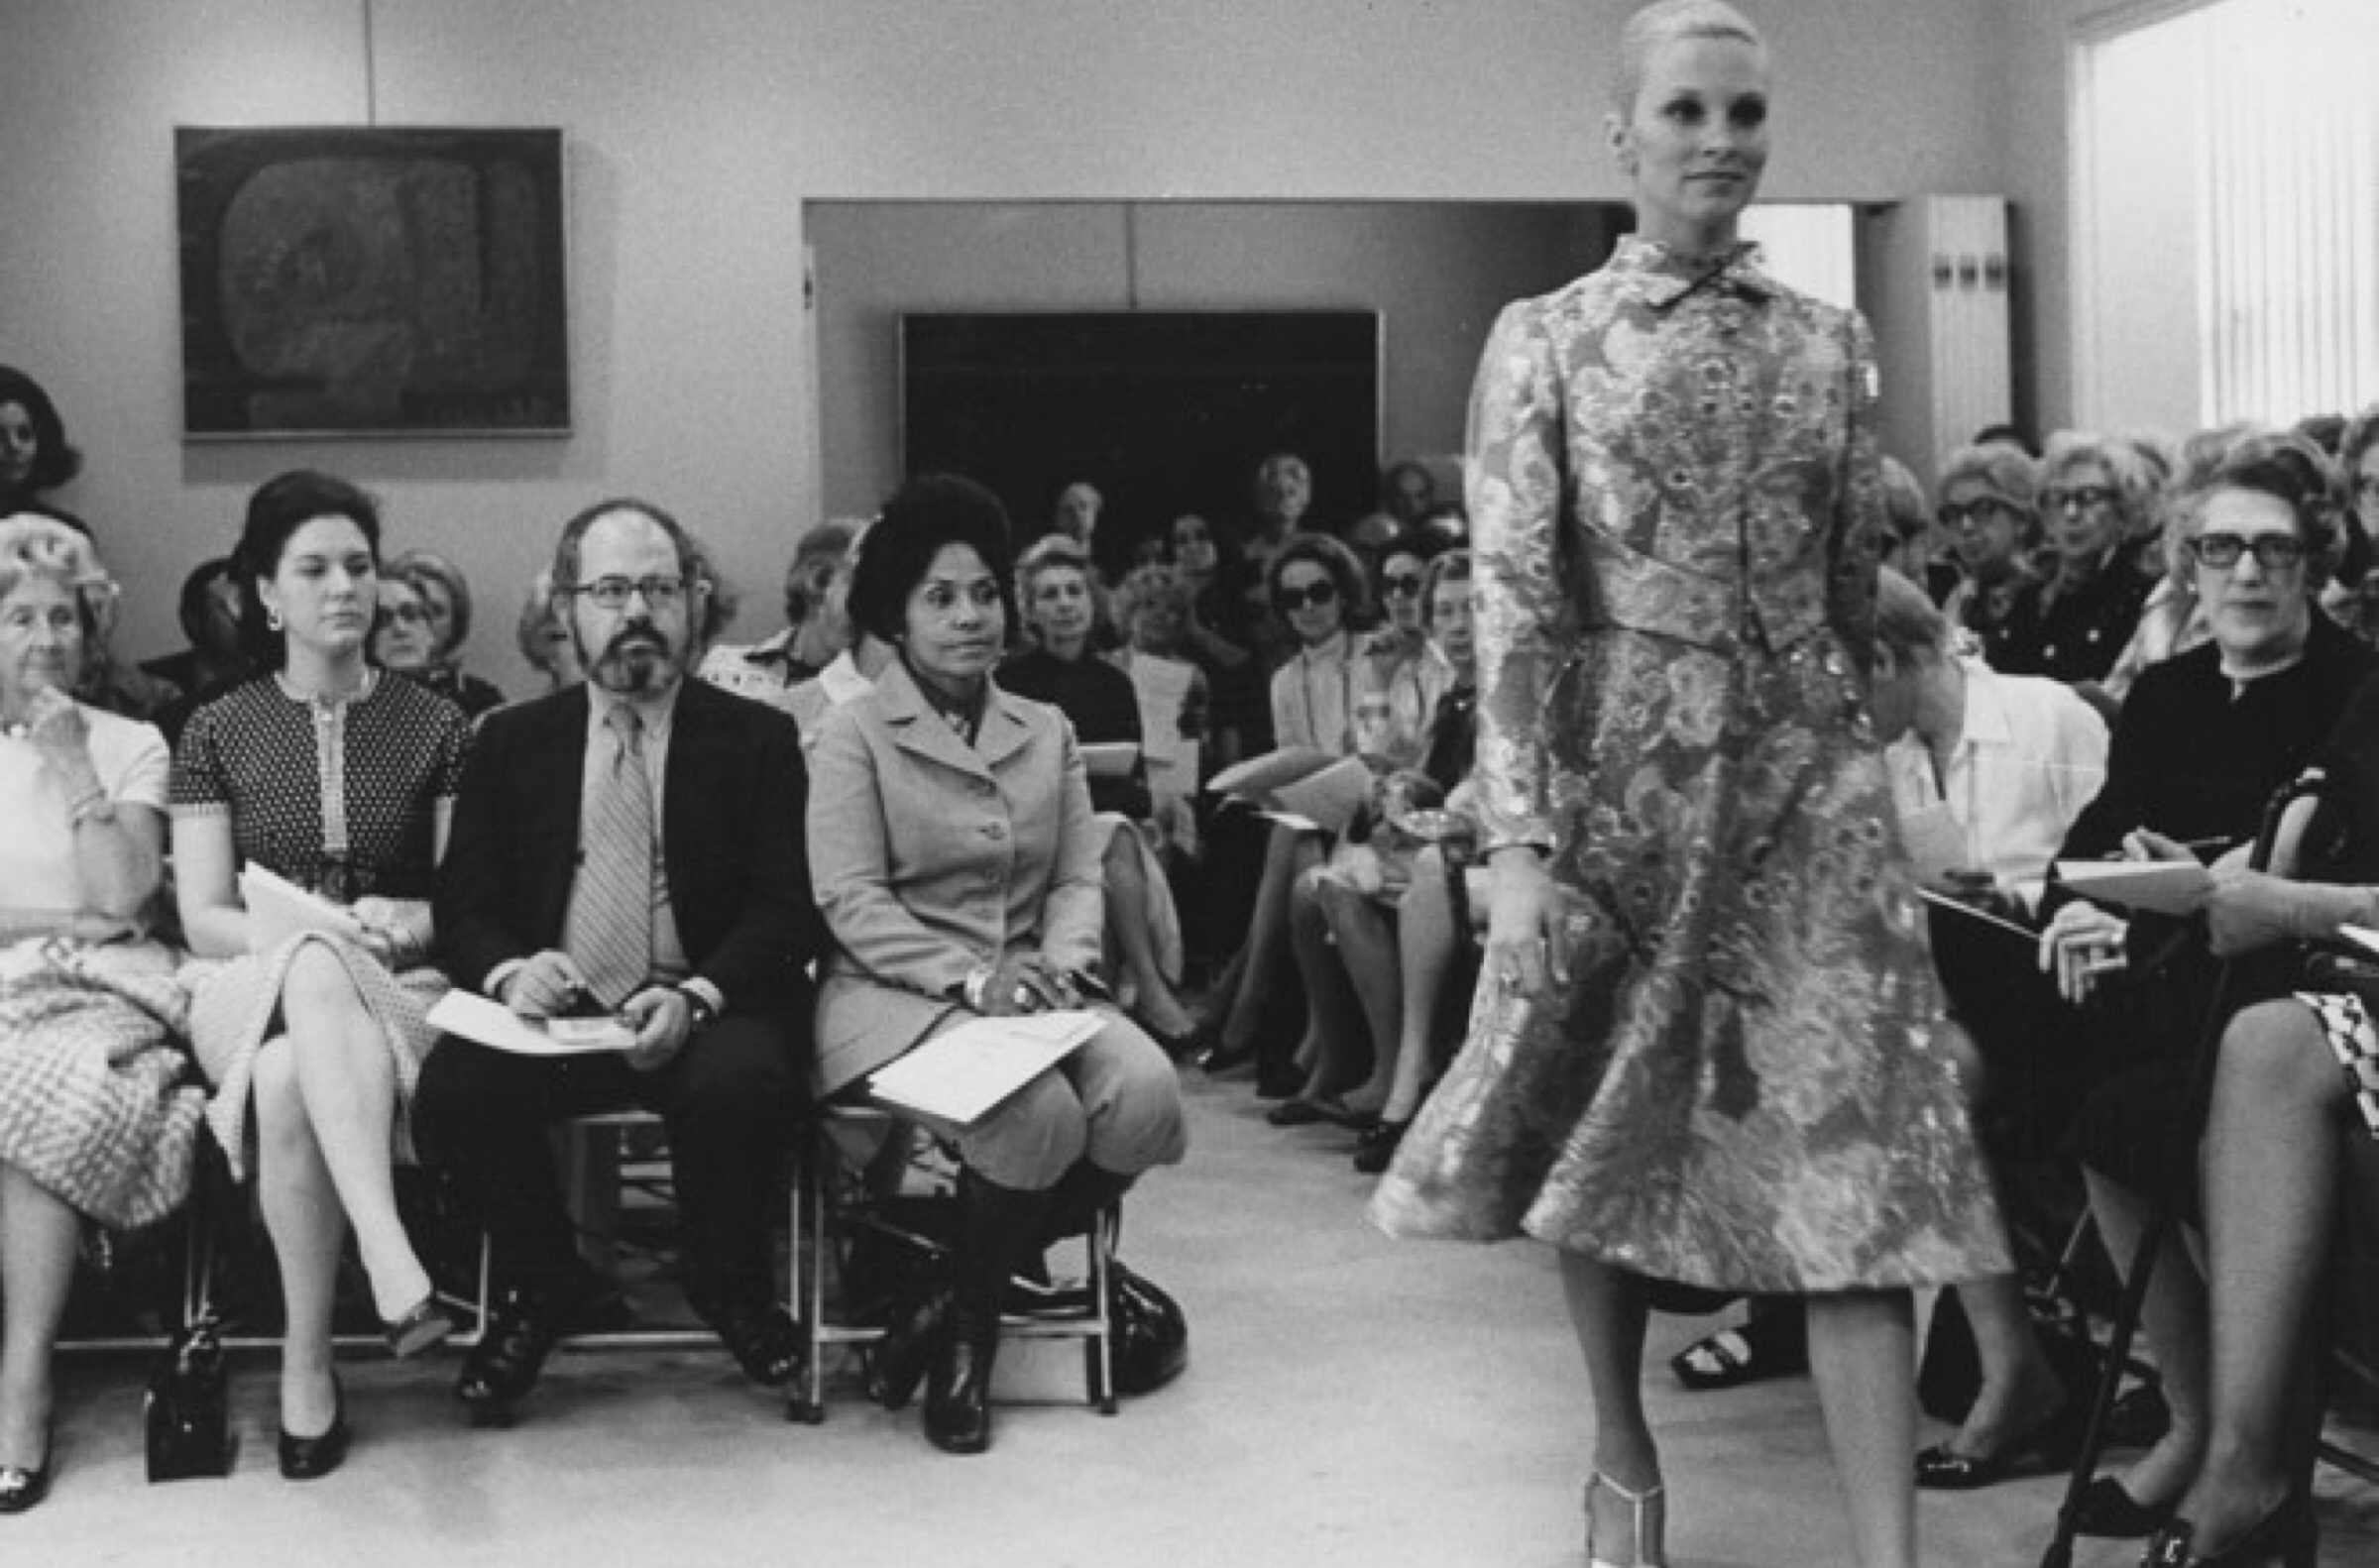 Pioneer and Curator of Ebony Fashion Fair, Eunice Walker Johnson sitting front row during a fashion presentation.